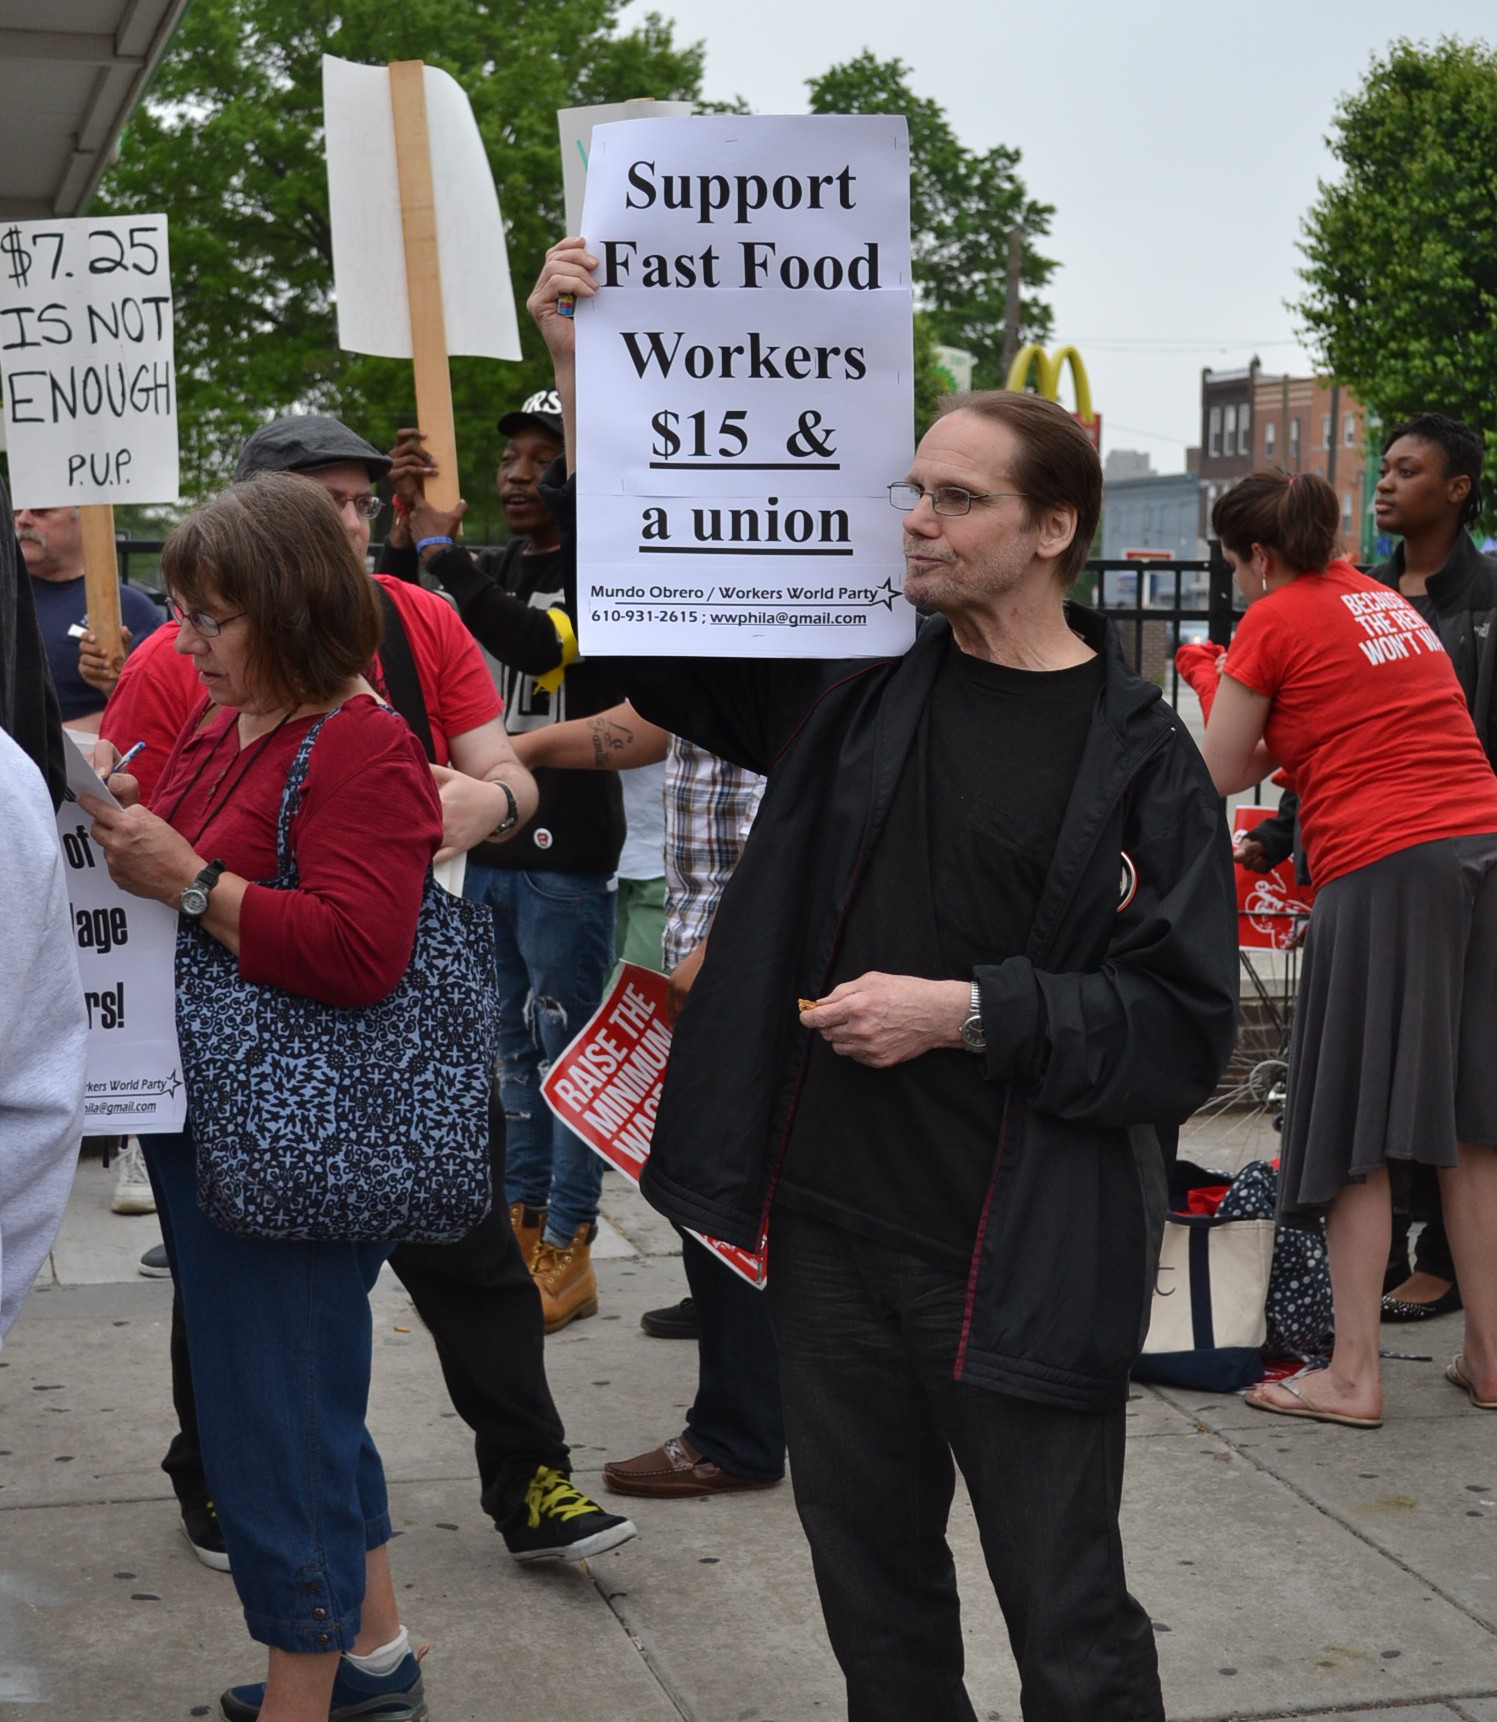 Rally for Fast Food Workers Rights May 2014